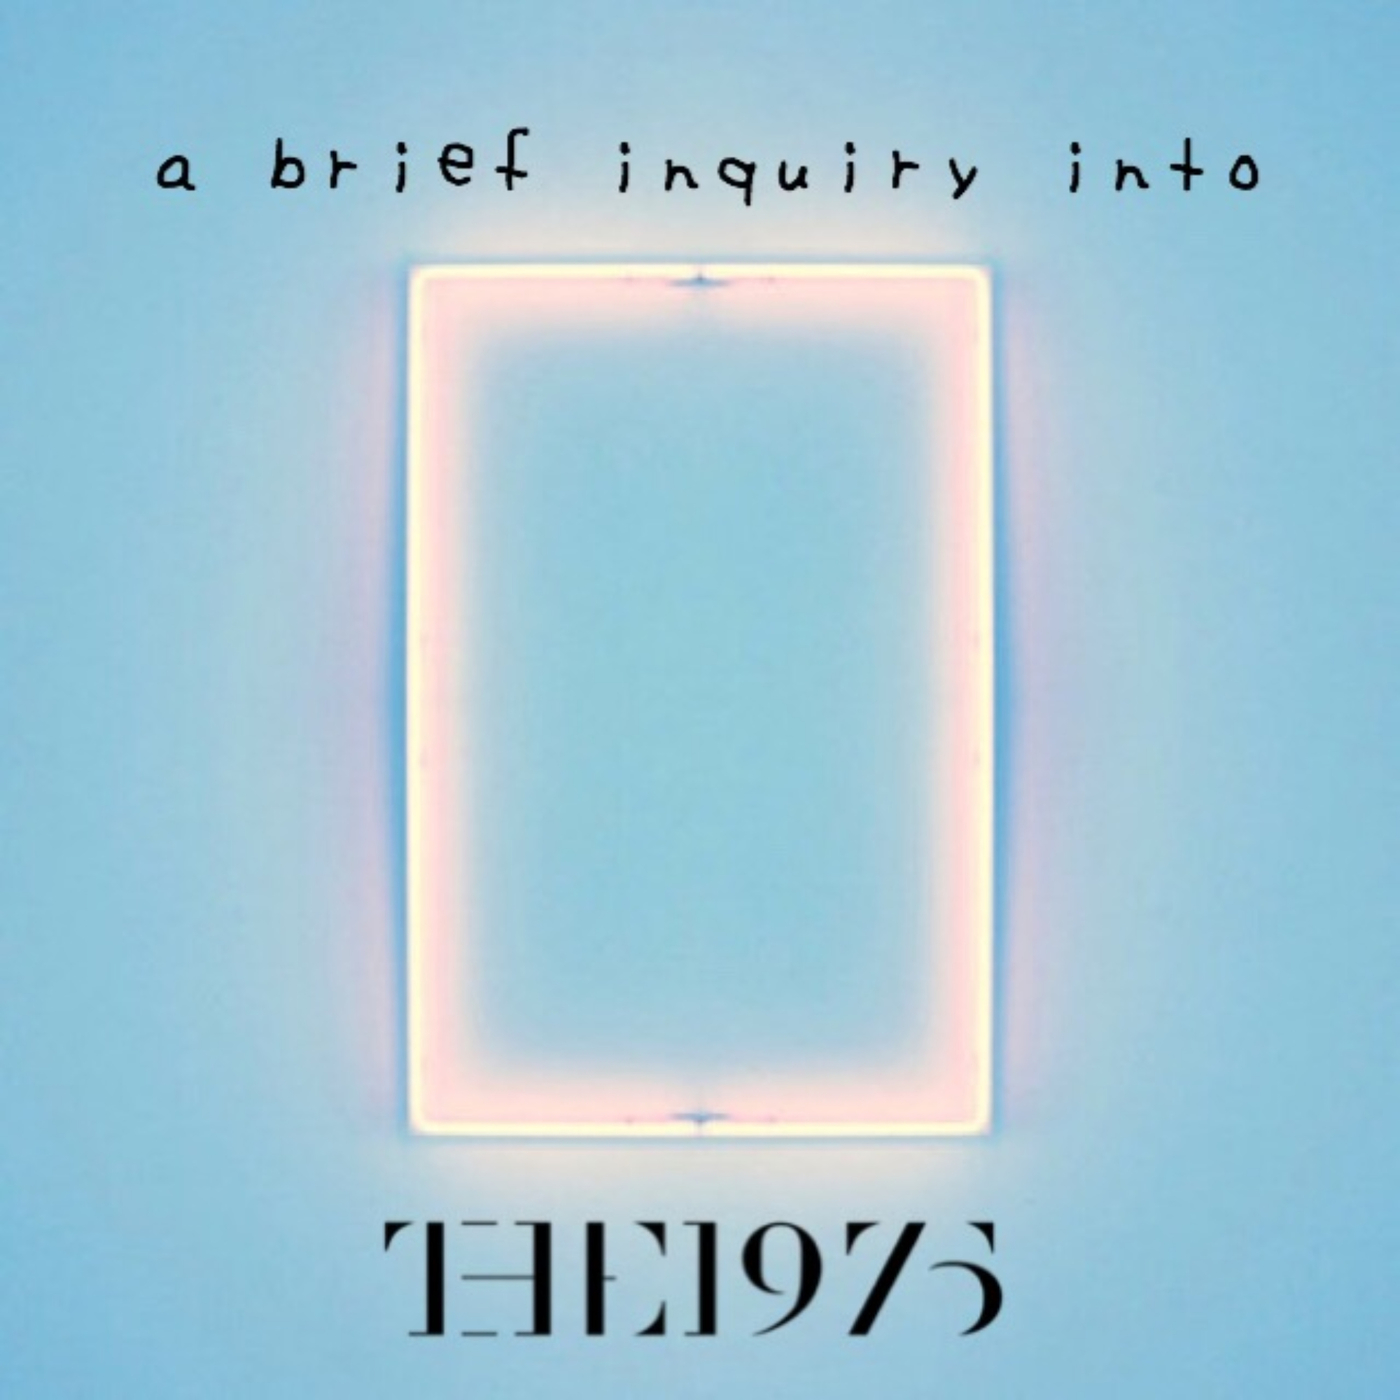 A brief inquiry into the 1975 episode 4: The Self-Titled Album (Part One)